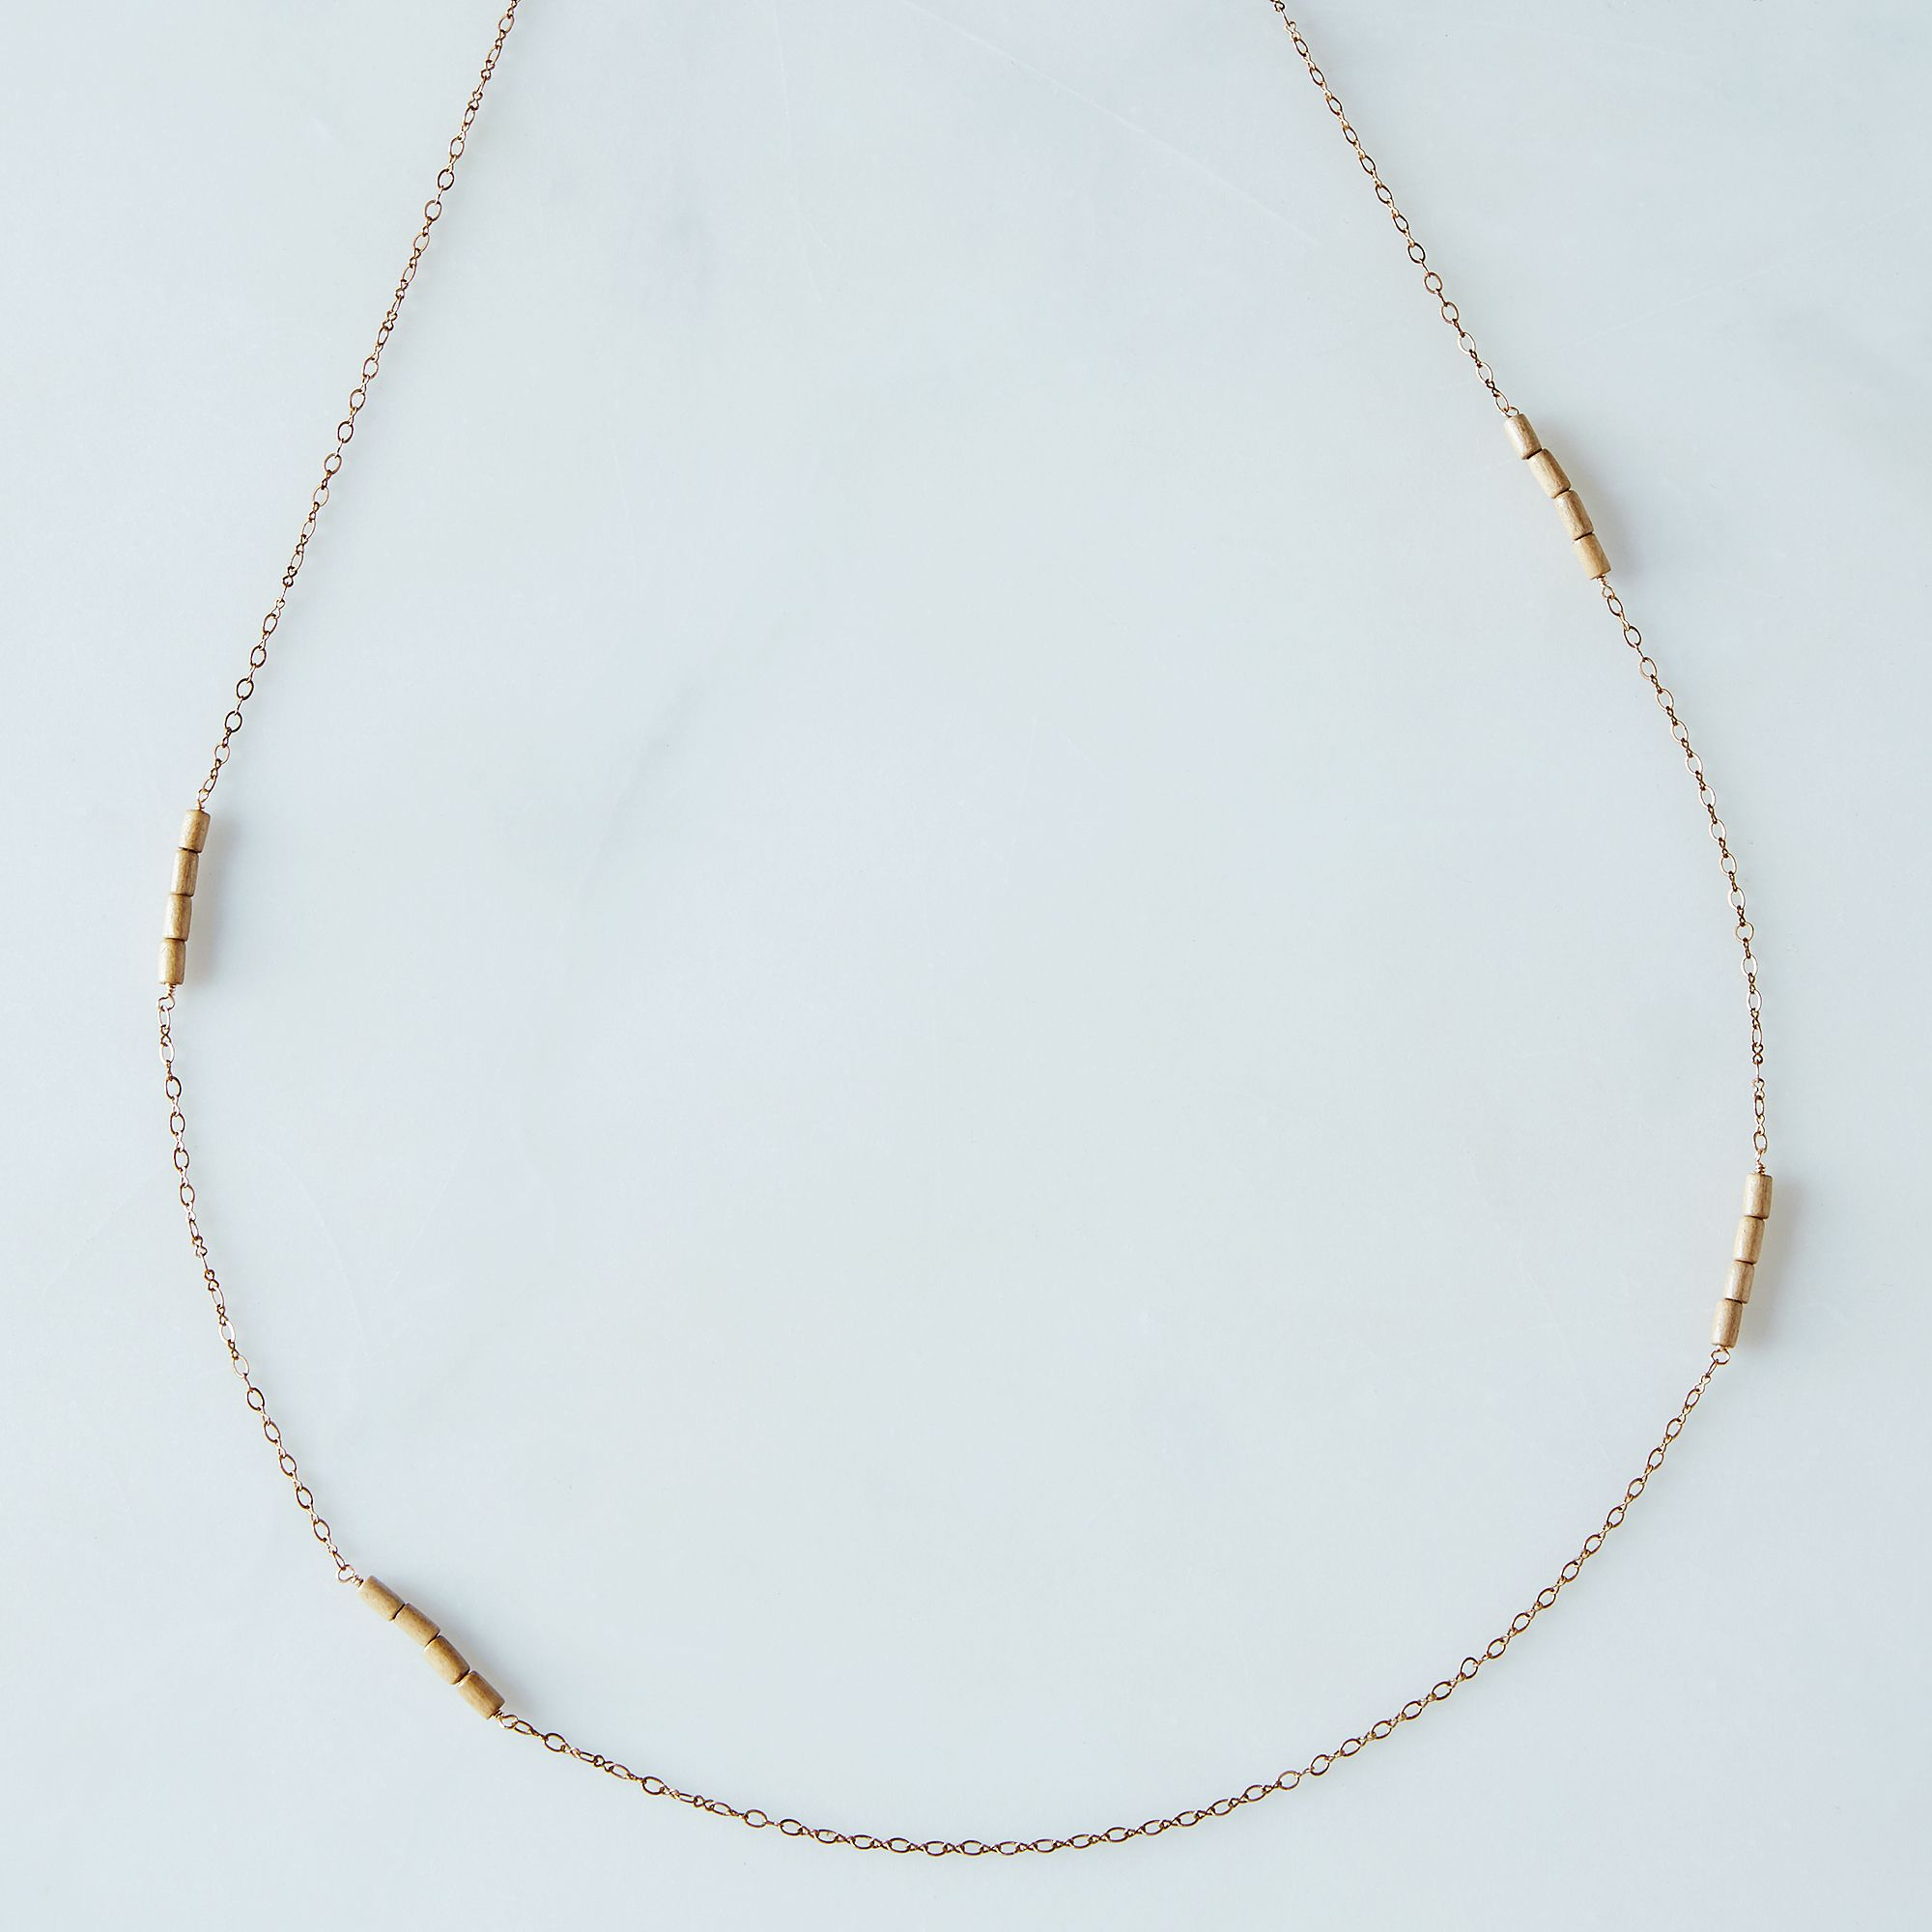 59865289 77d0 4353 b522 5f8e11ff65d9  2015 0311 brass and wood necklace weaved natural silo 058